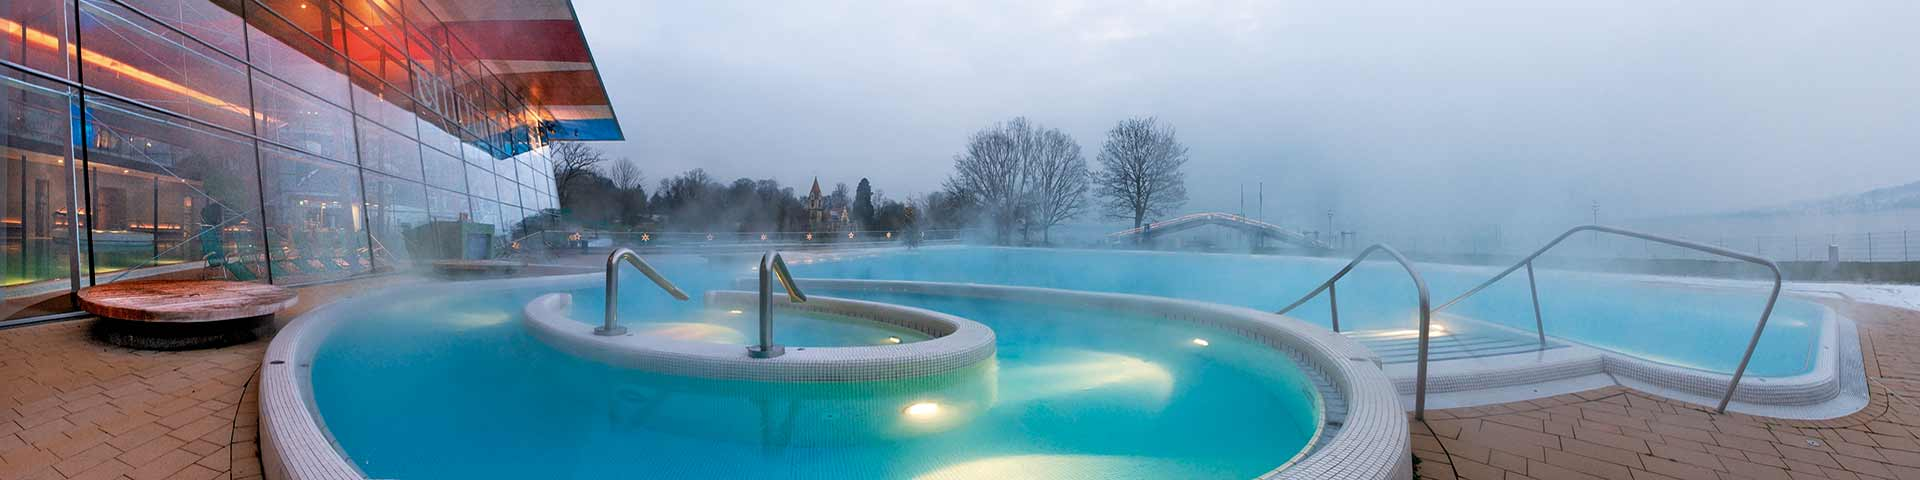 Winter Thermen Angebot Bodensee